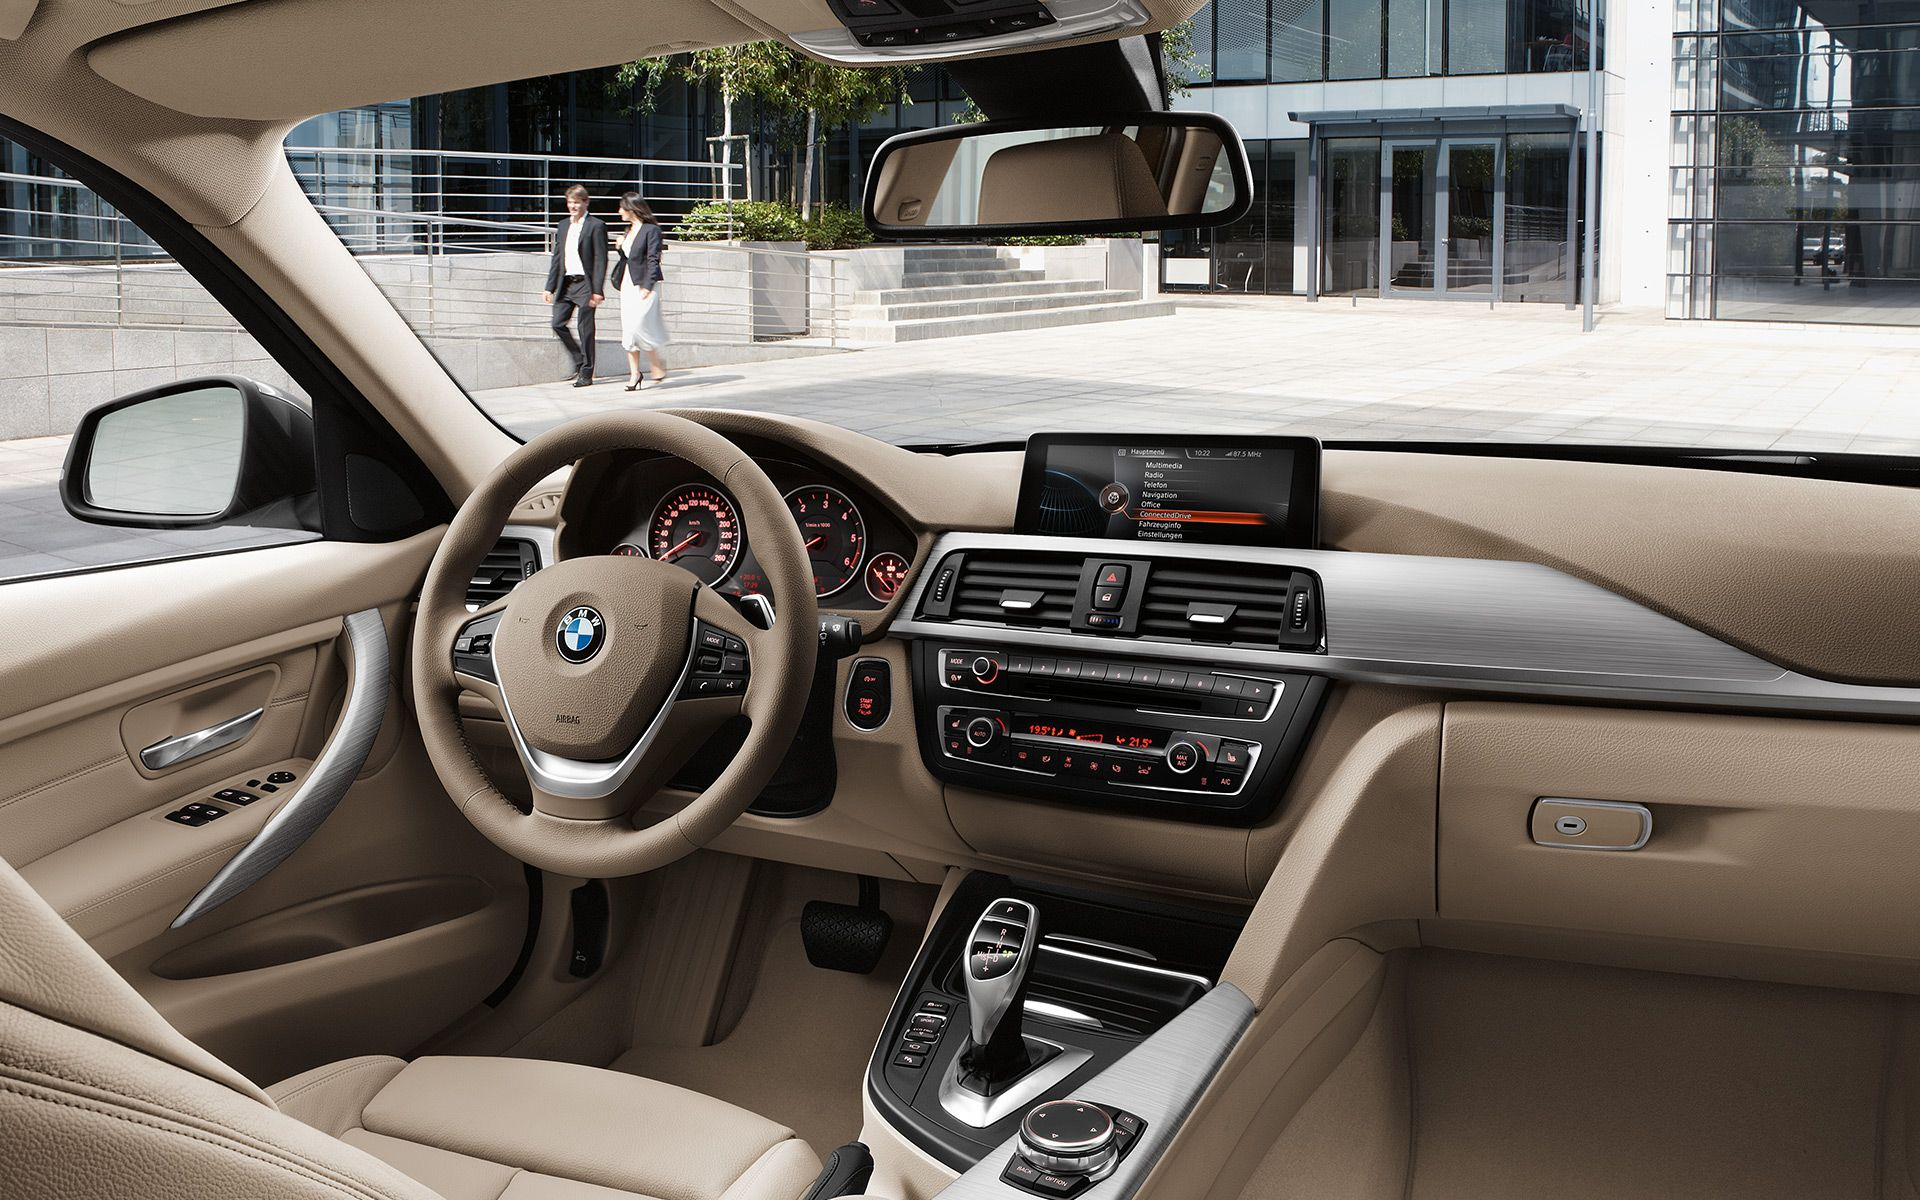 BMW Series Sedan Review And Price BMW BMW Series And Sedans - Bmw 3 touring price